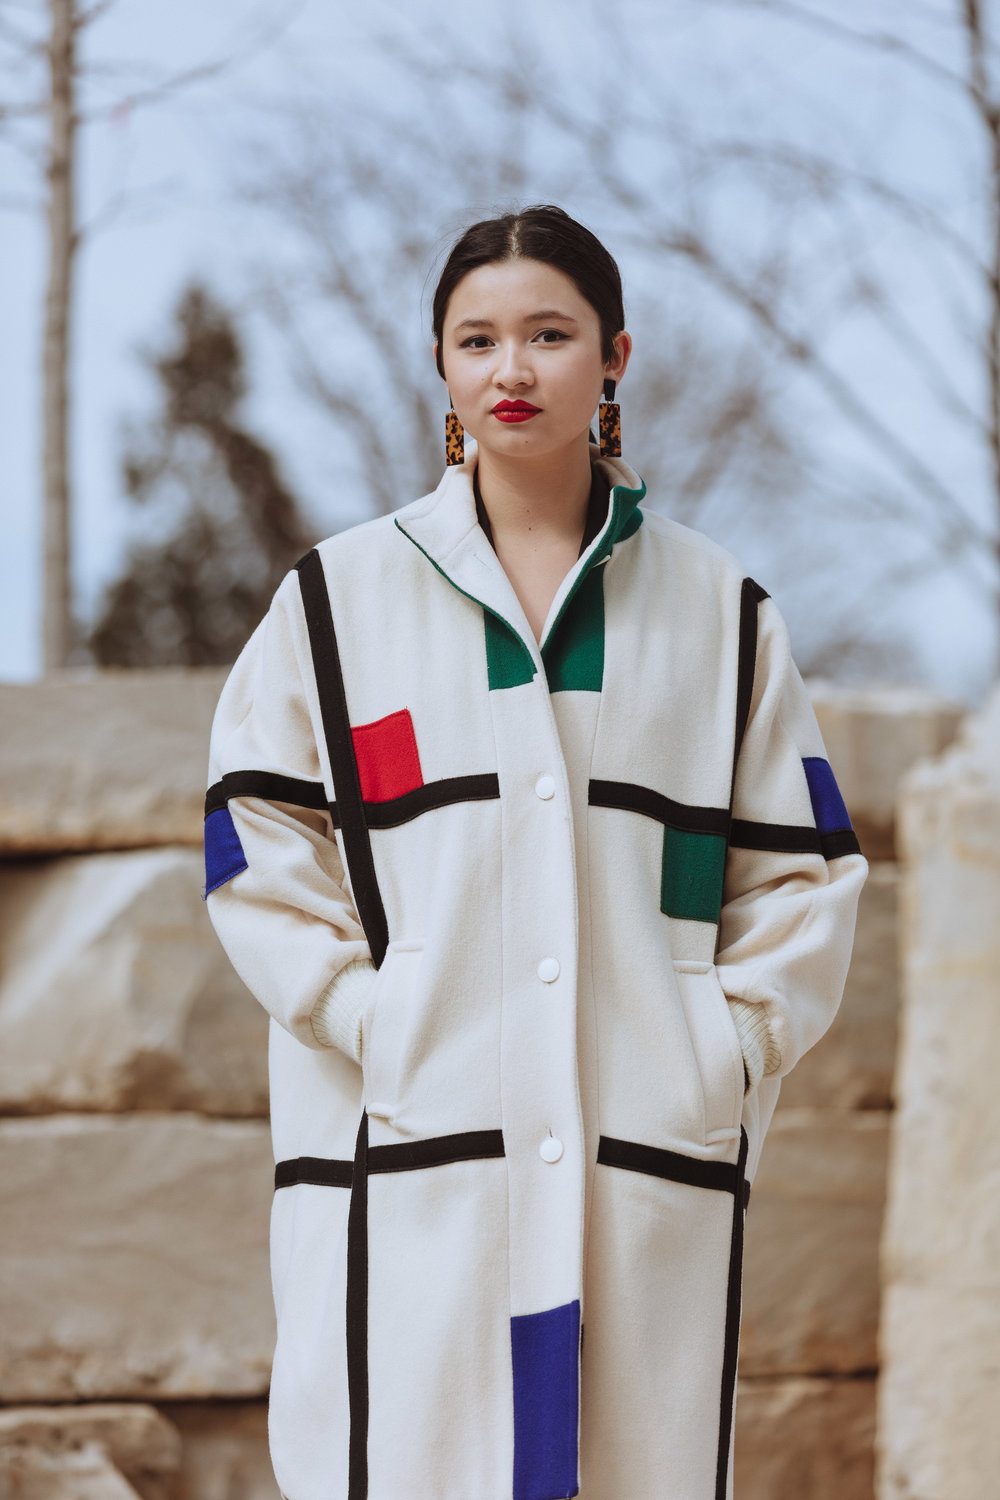 This jacket is probably the most cherished piece that I own. One of the things I love about it is how excited people get when they see me wearing it on campus because it resembles a Mondrian painting, a true testament to the kind of people at UChicago.